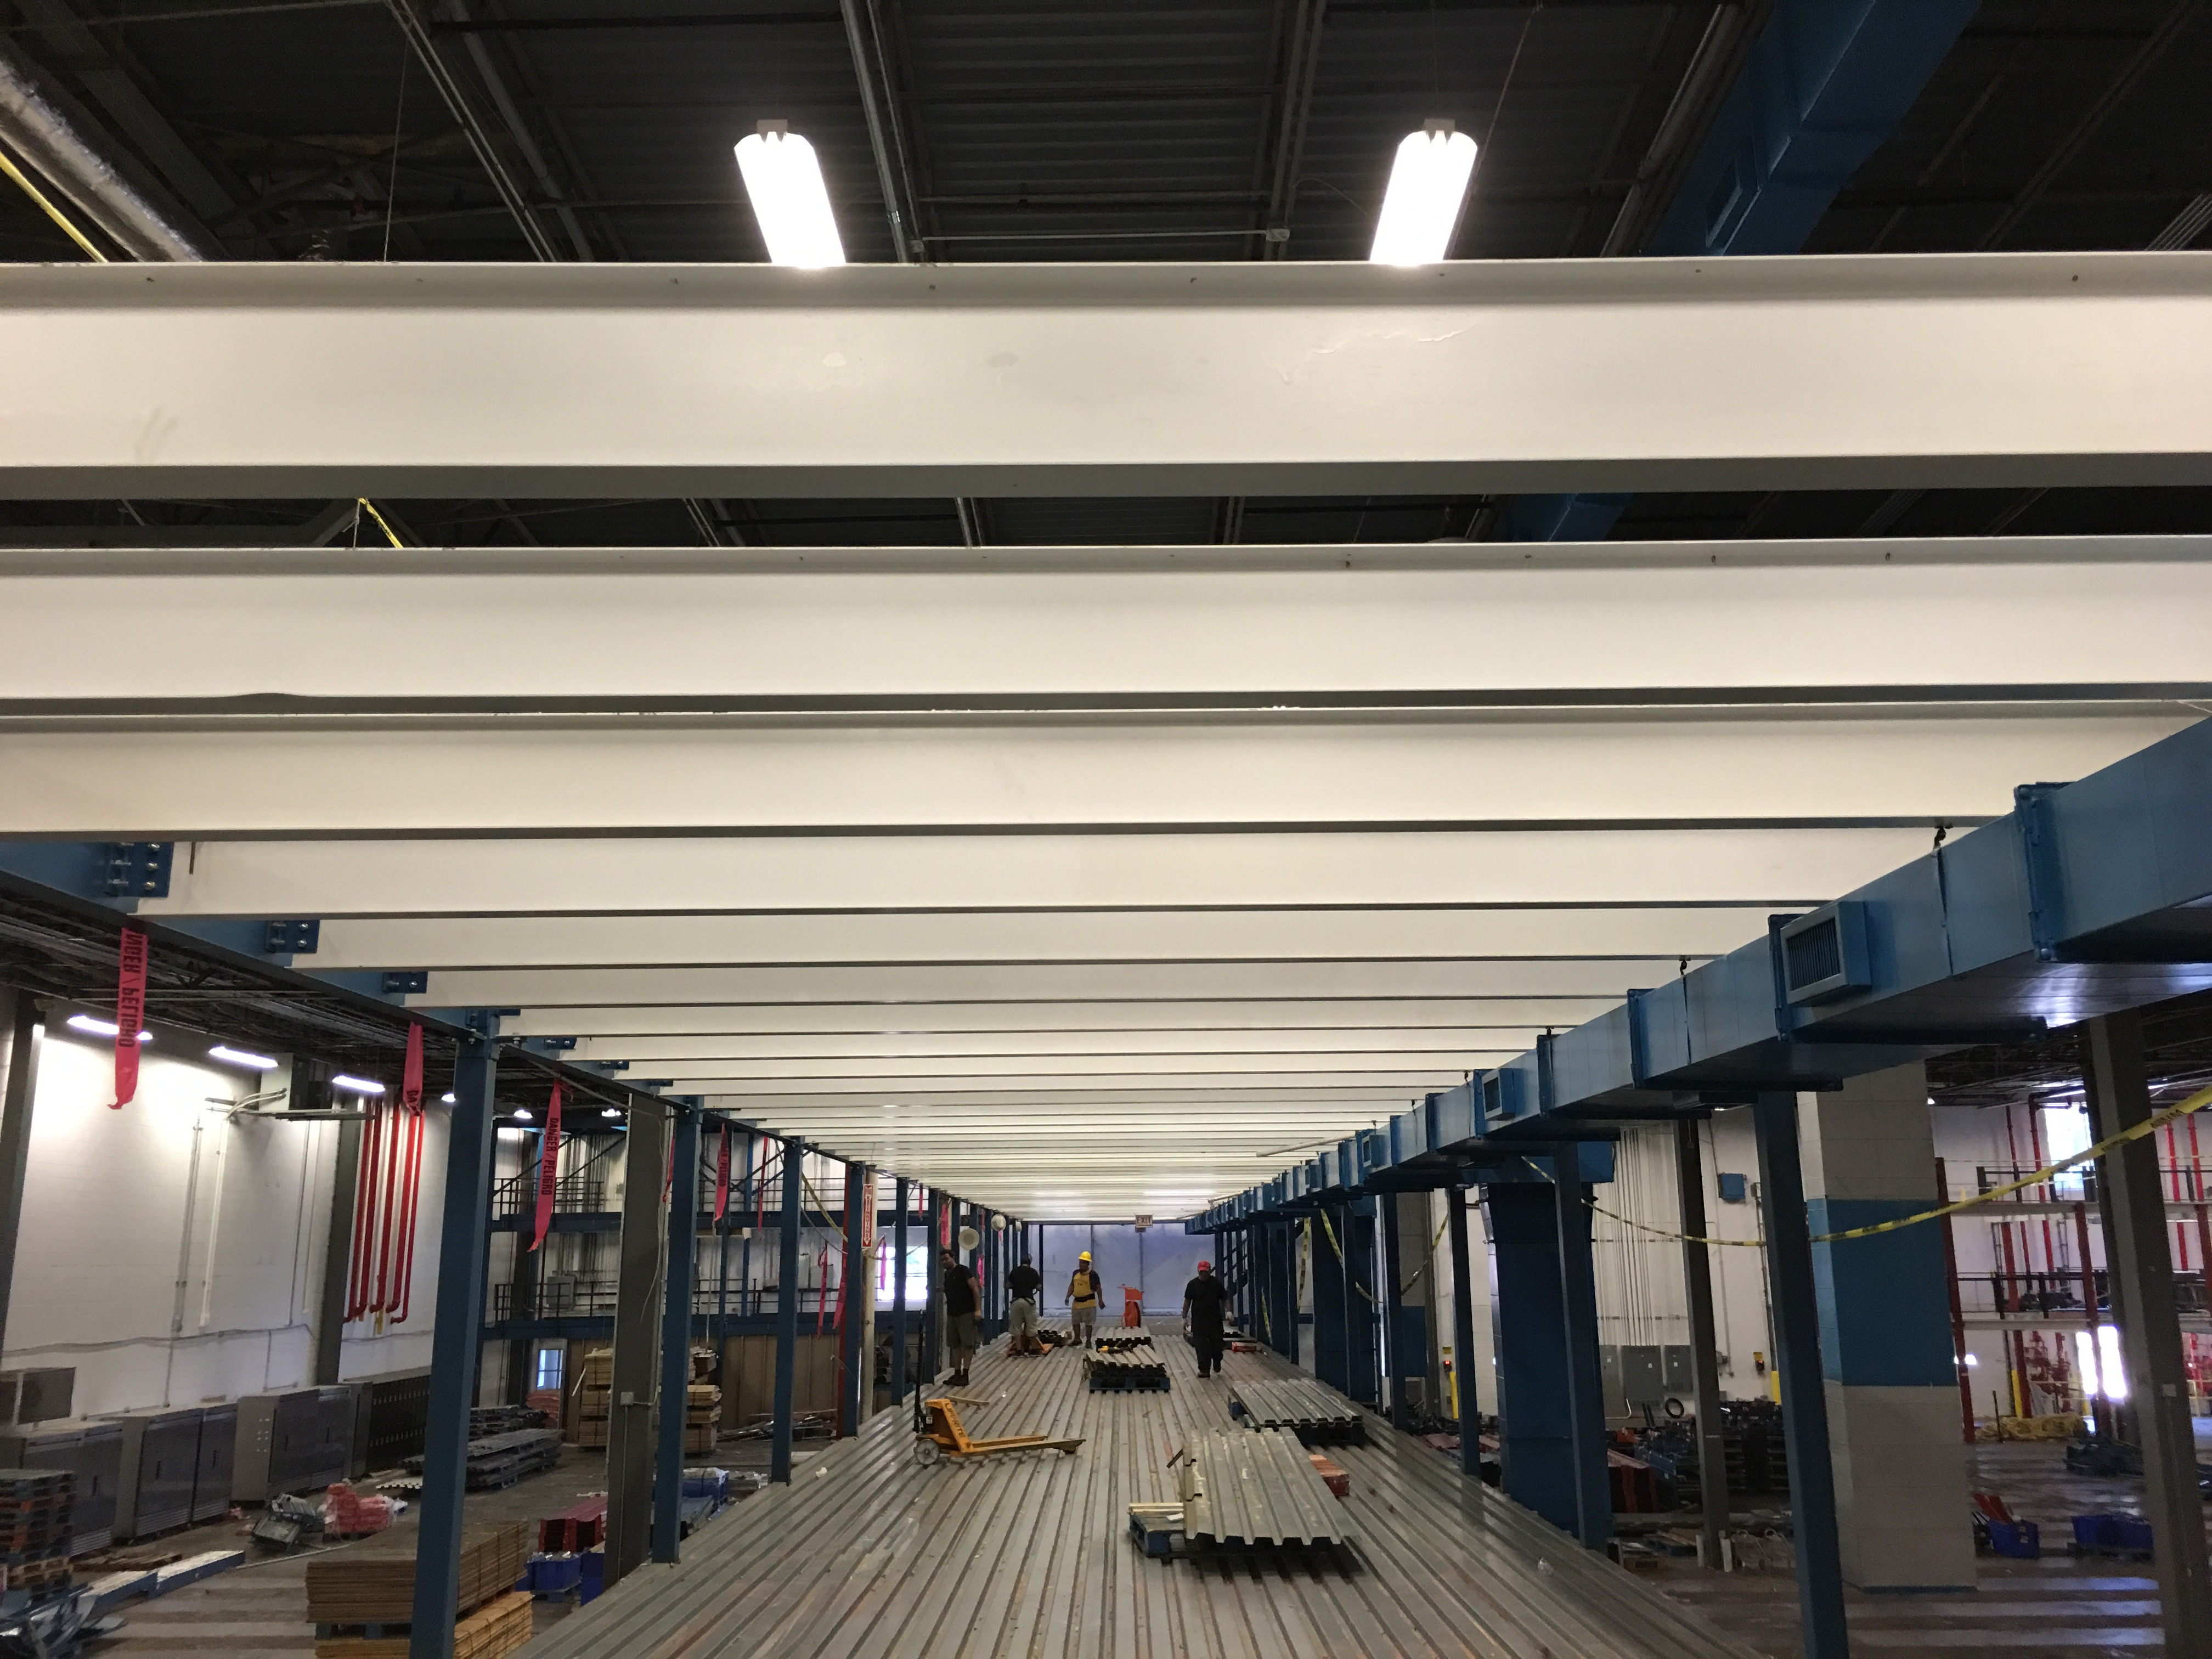 Lot 26 - 1500 SQ FT OF MEZZANINE WITH WOODEN FLOOR DECKING, OVERALL SIZE: 18'W X 84'LONG